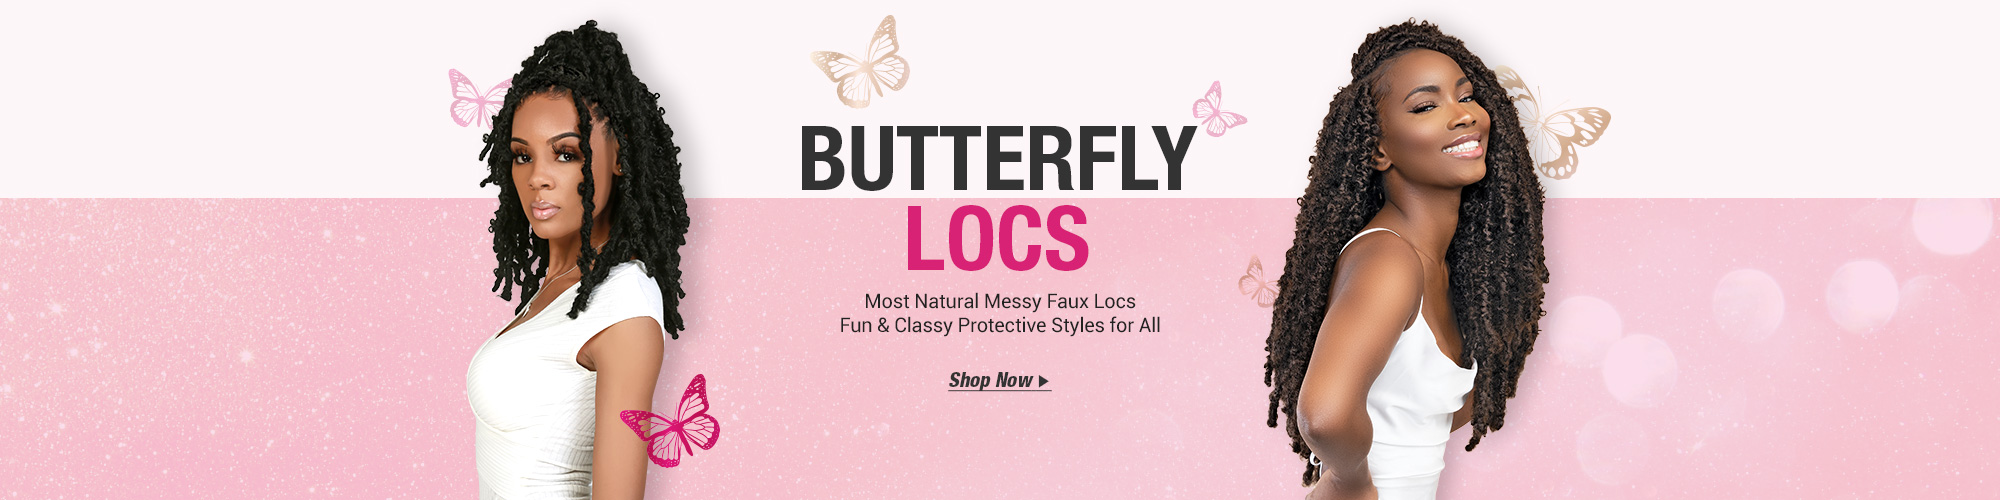 BUTTERFLY LOCS